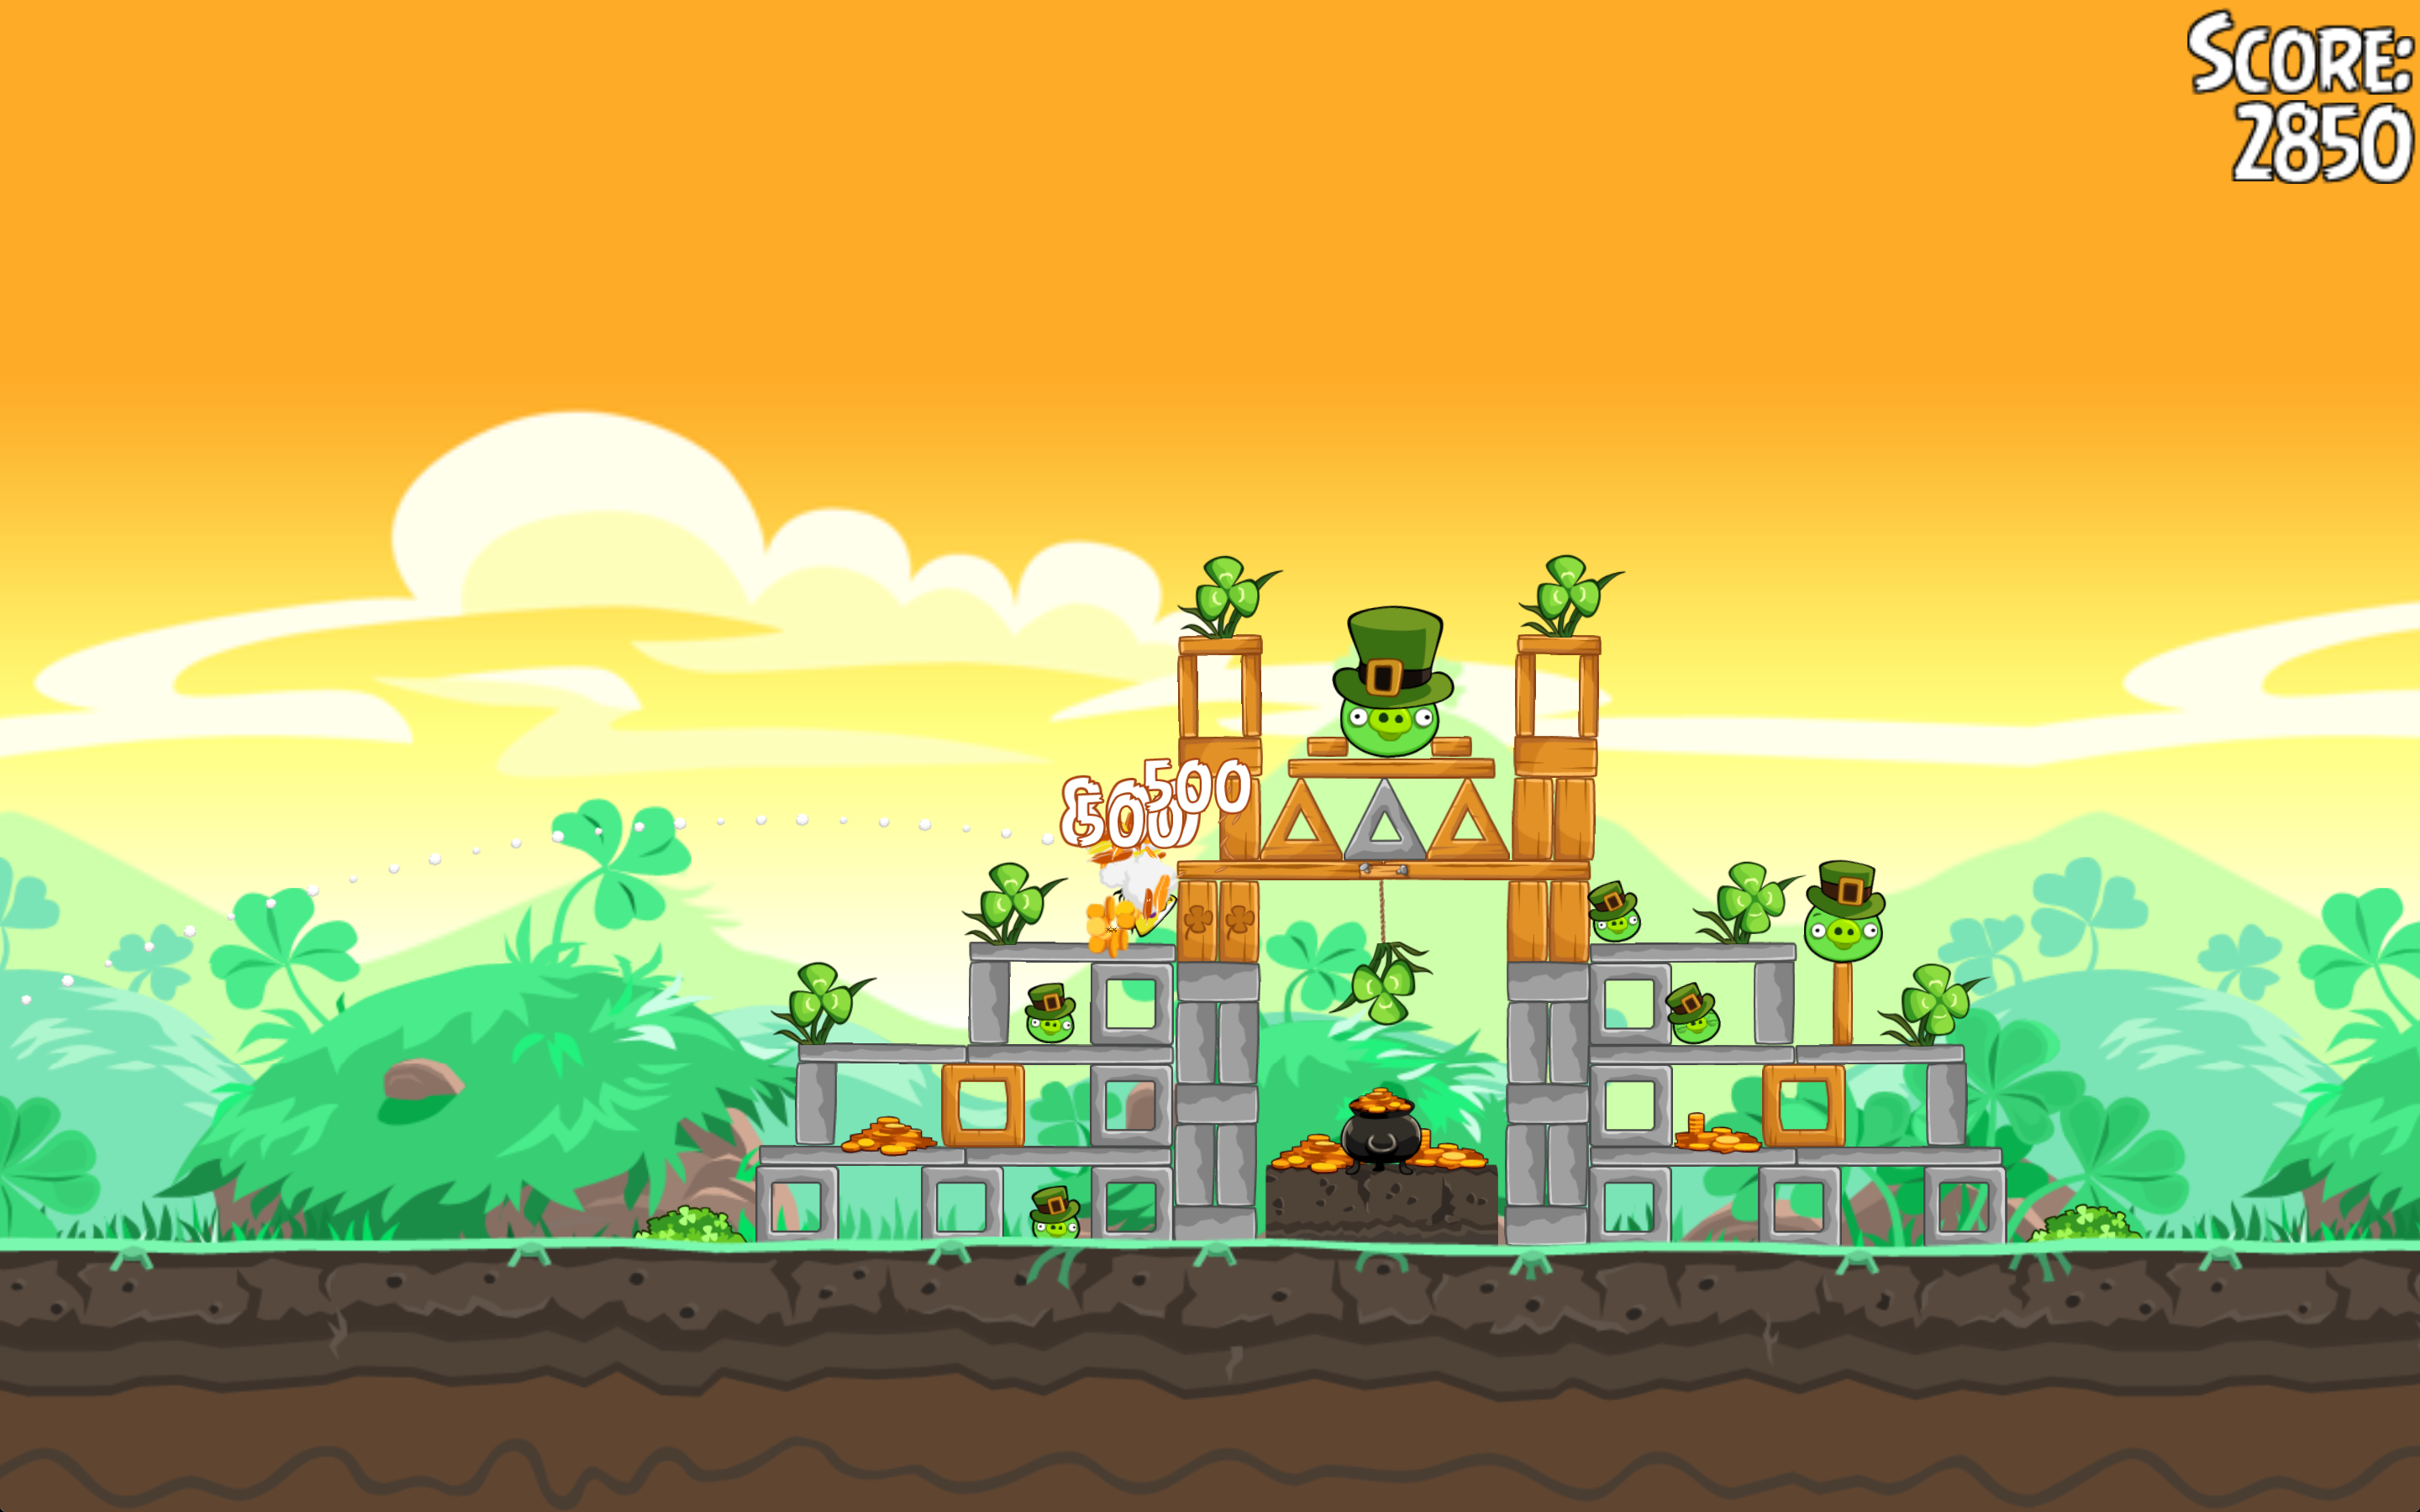 Angry Birds Seasons 4.0.1 (2013) [En] [App Store]